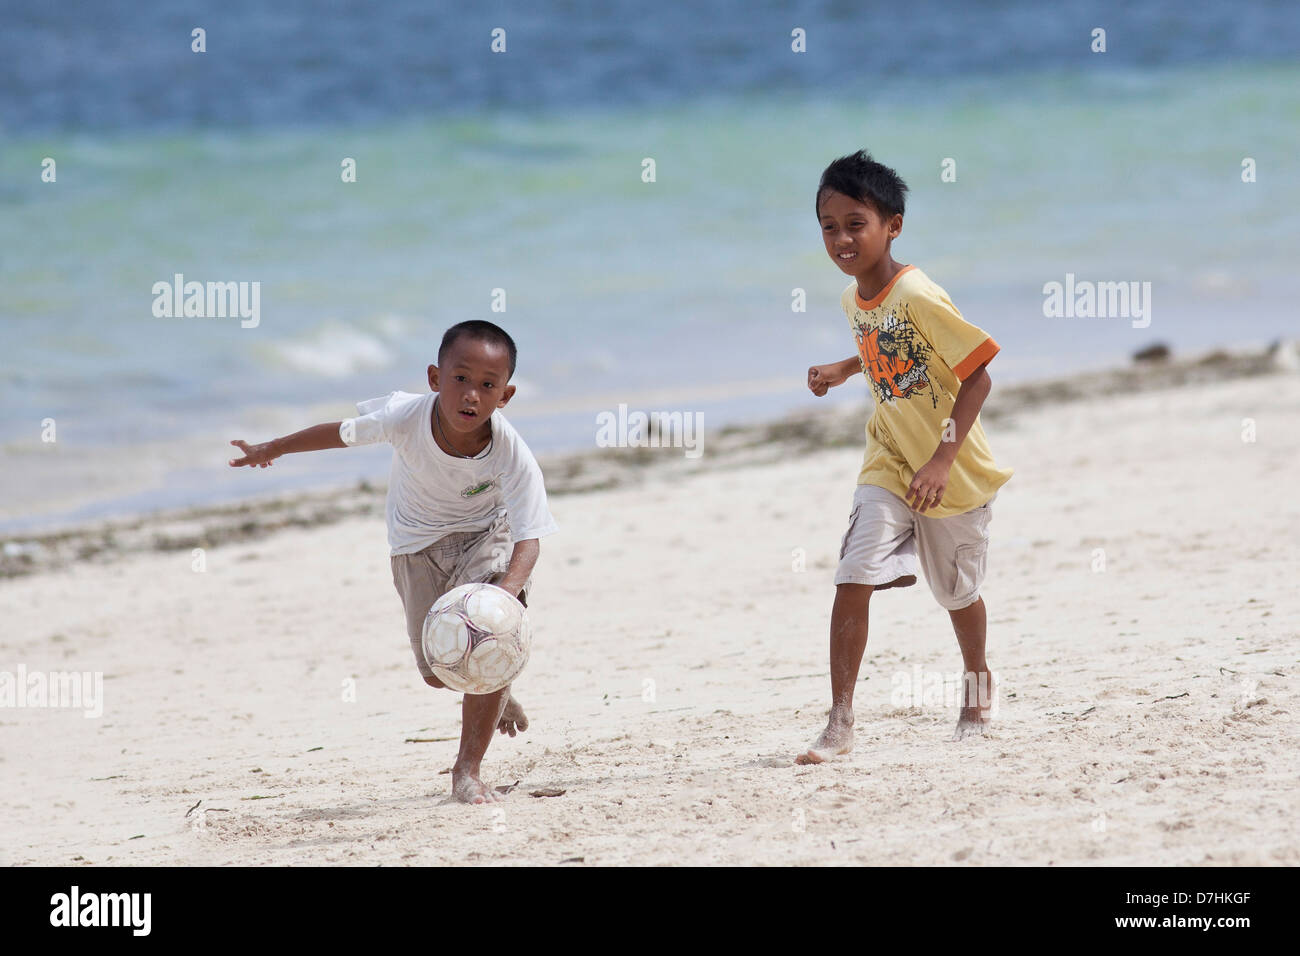 Young local boys playing football on a beach in Boracay, Philippines Stock Photo